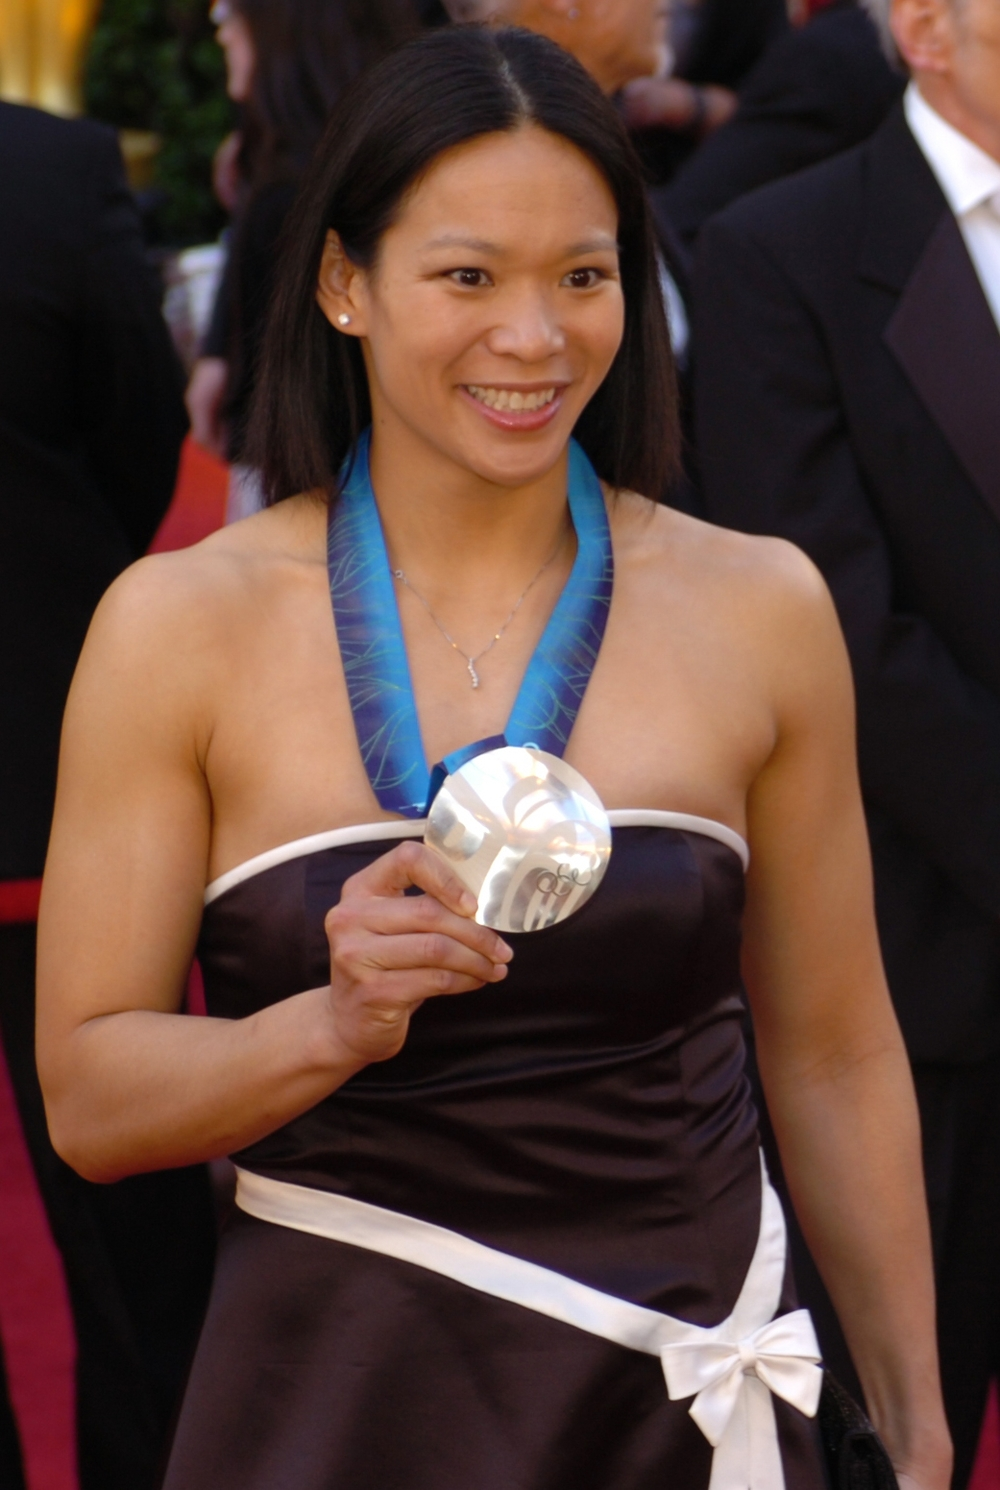 Julie Chu with her 2010 U.S. women's hockey silver medal at the 82nd Academy Awards. Photograph by Sgt. Michael Connors